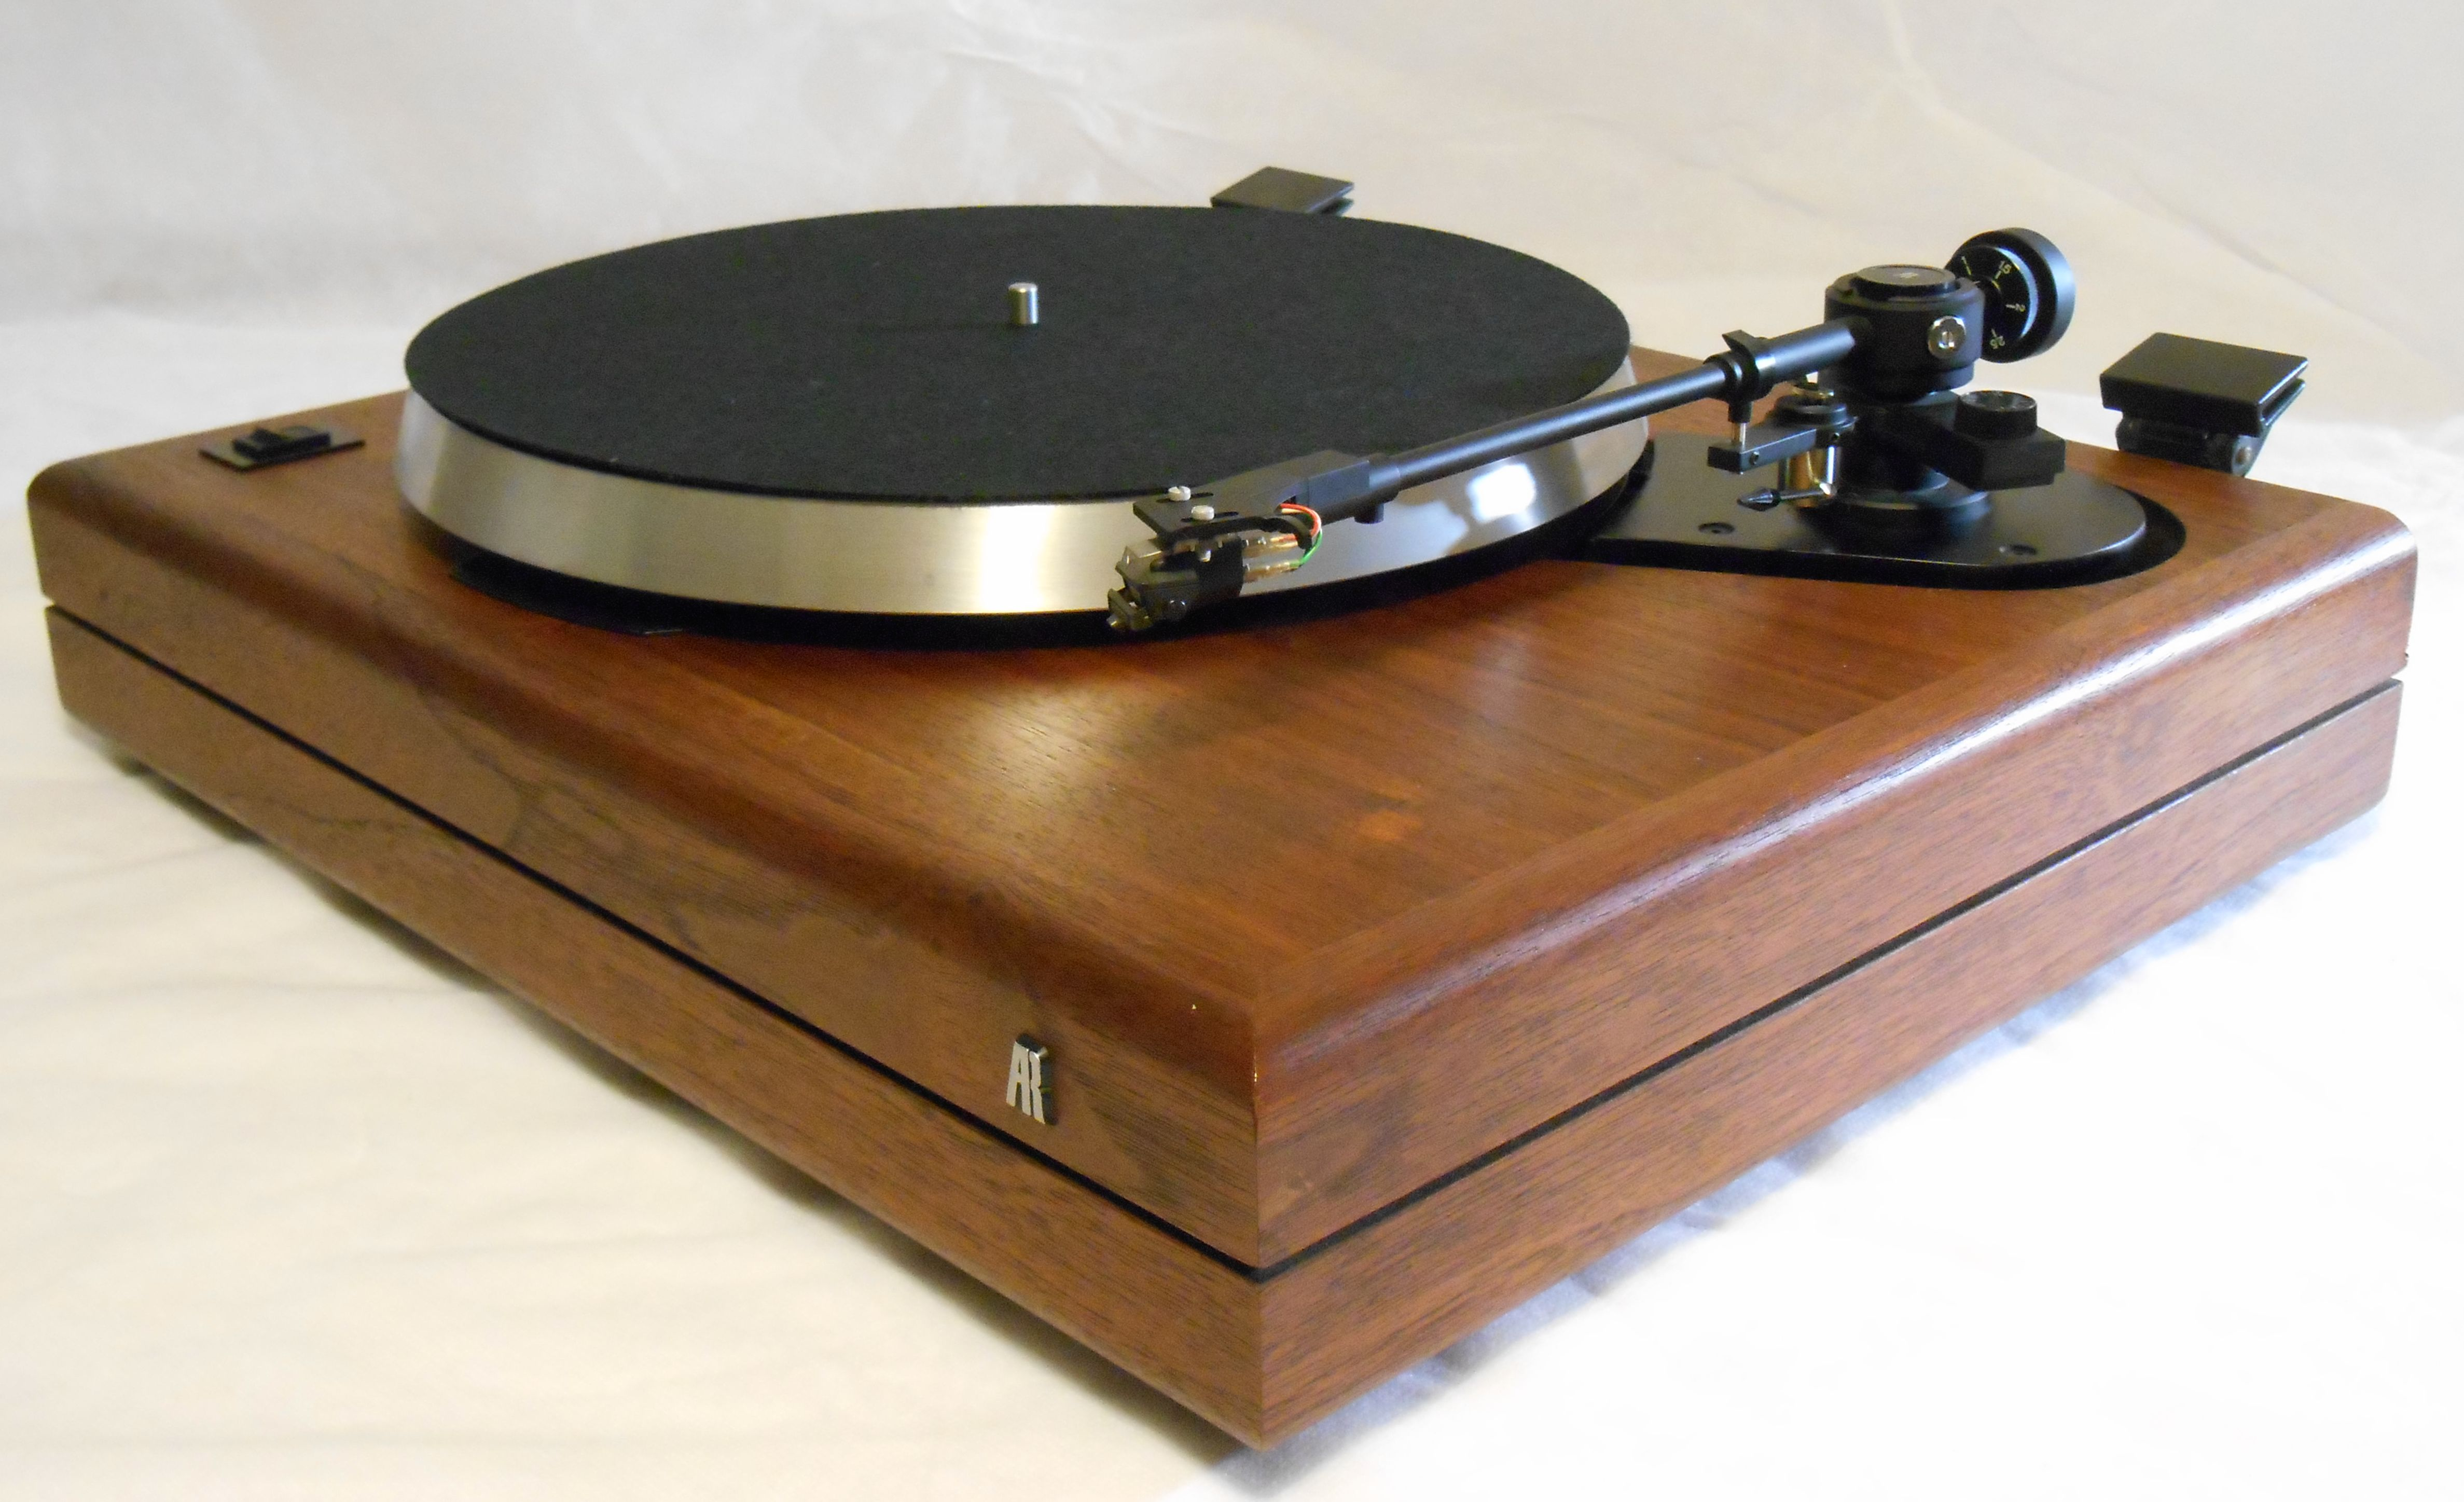 AR the Turntable in Walnut, includes Shure V-15 Cartridge